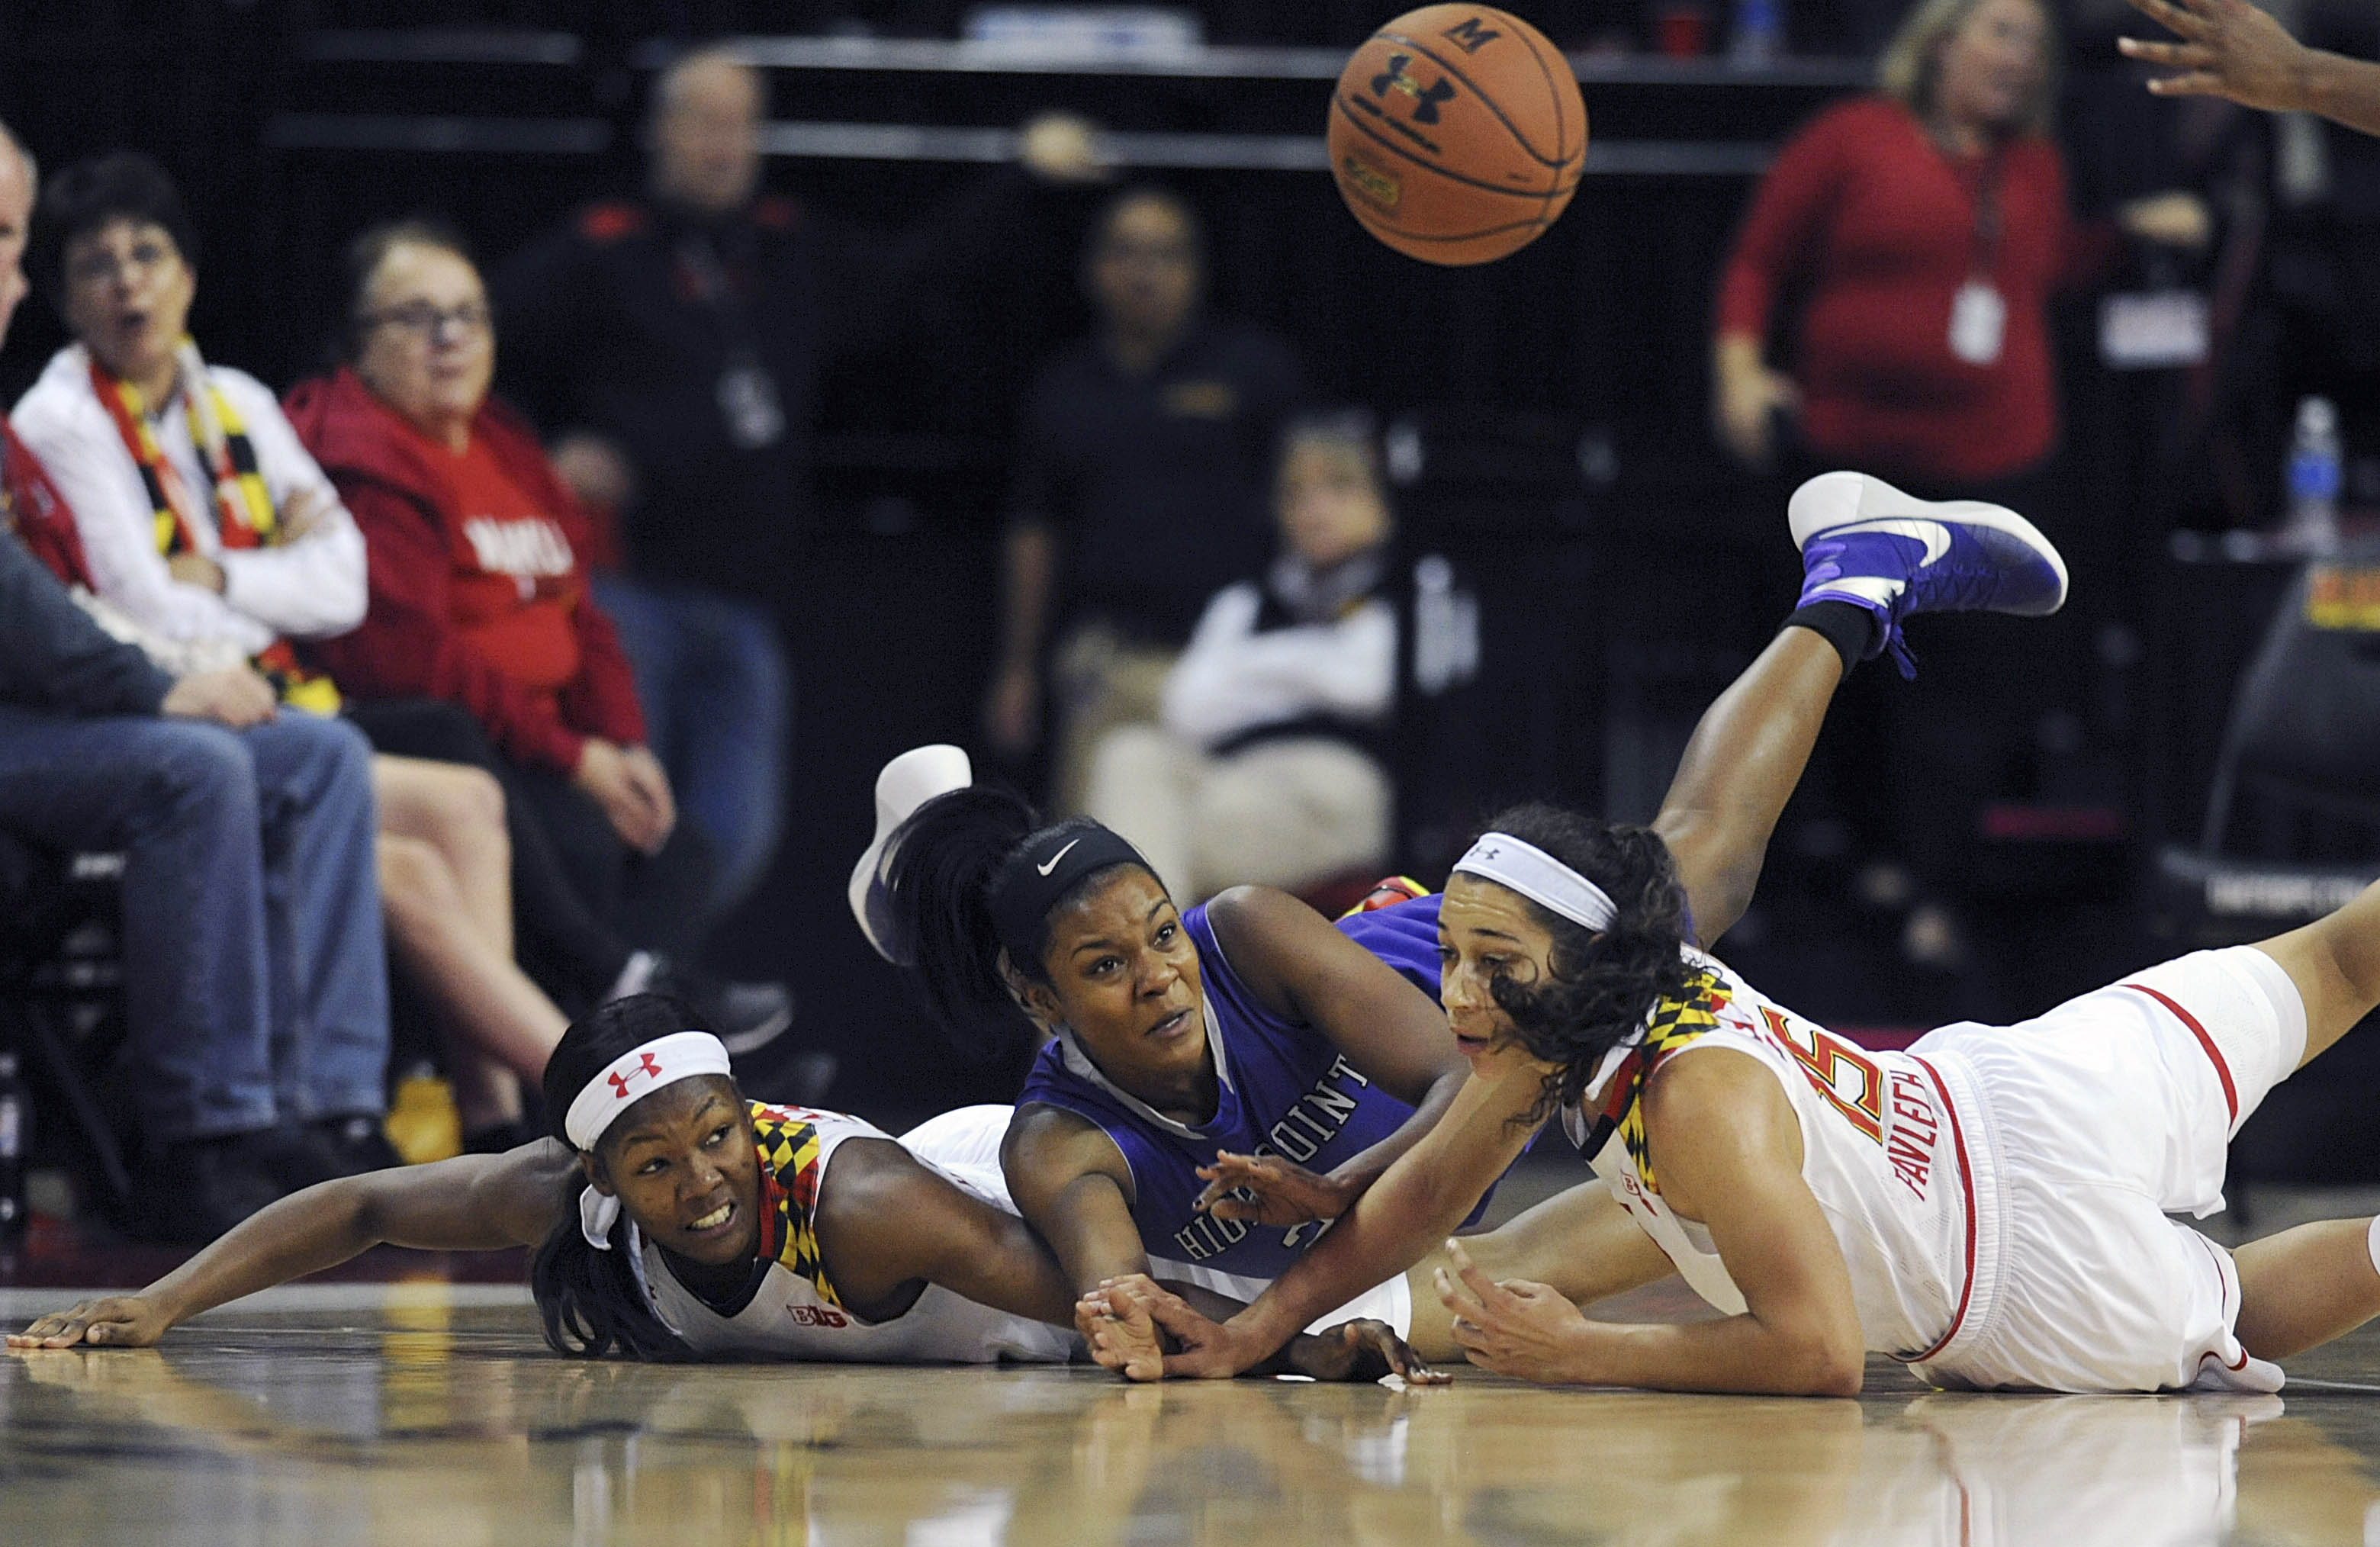 Maryland's A'Lexus Harrison, left, and Chloe Pavlech, right, along with High Point's Lindsey Edwards, center, dive for a loose ball in the first half of an NCAA college basketball game, Wednesday, Nov. 18, 2015 in College Park, Md.(AP Photo/Gail Burton)